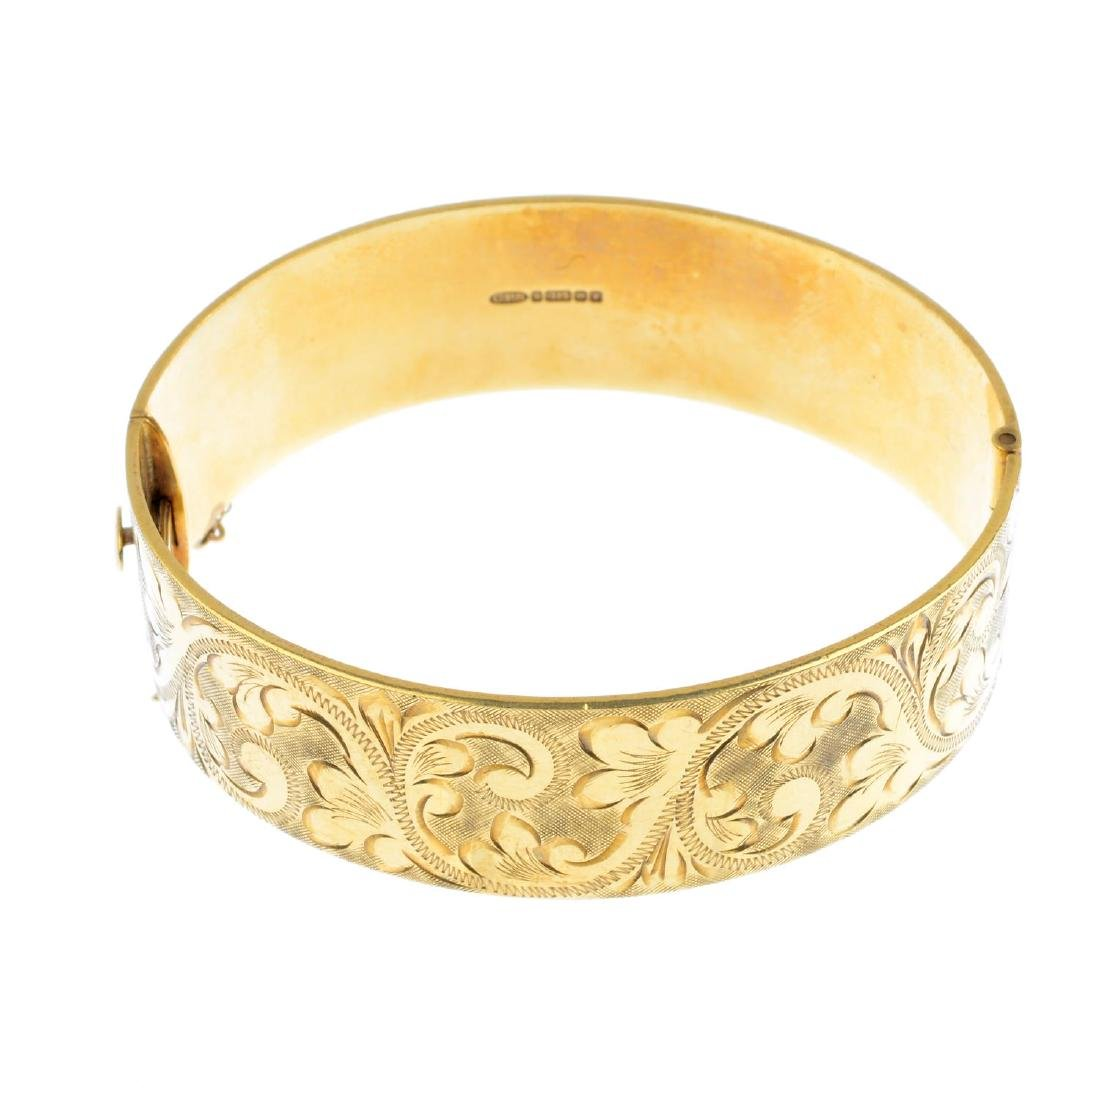 A 1970s 9ct gold hinged bangle. With engraved foliate